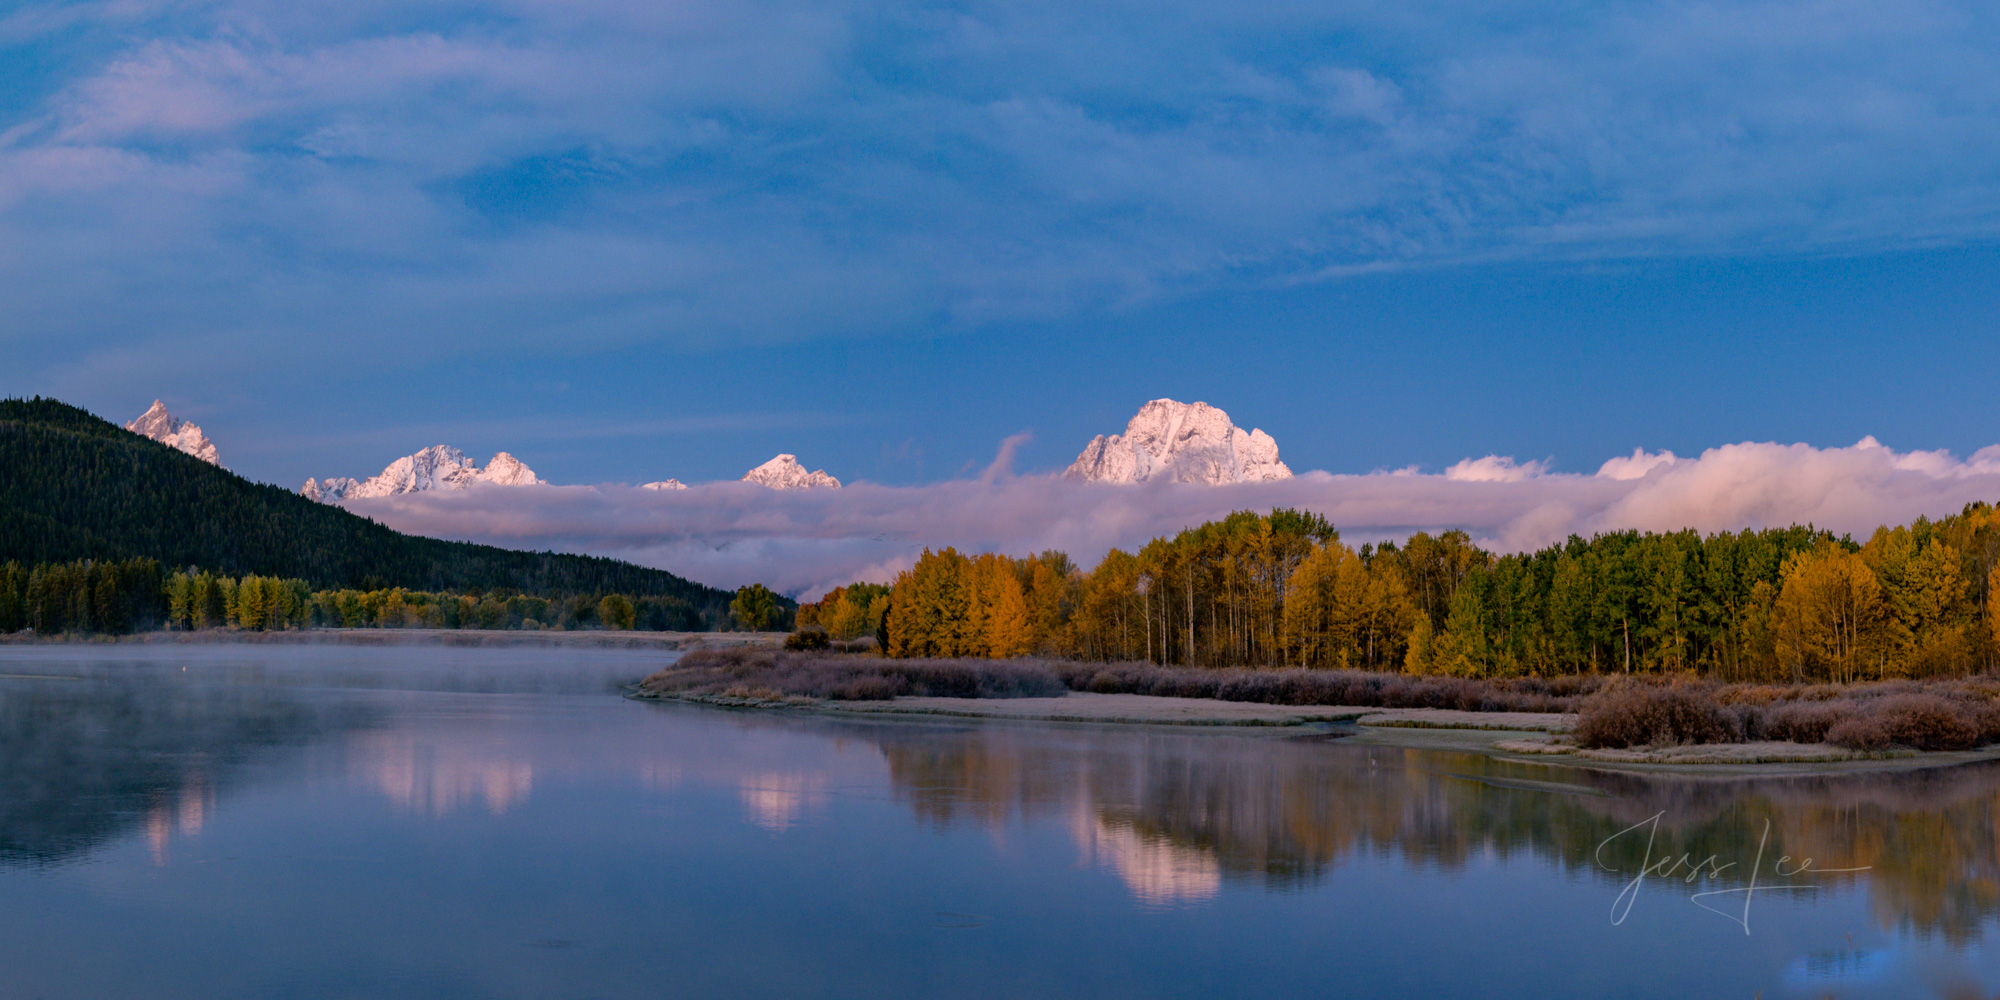 Grand Tetons oxbow bend Snake River photography, river, lake, water, reflections, mountain scene, landscape, Wyoming wilderness, nature, clouds, sunset, beautiful places, fall colors, trees,, photo